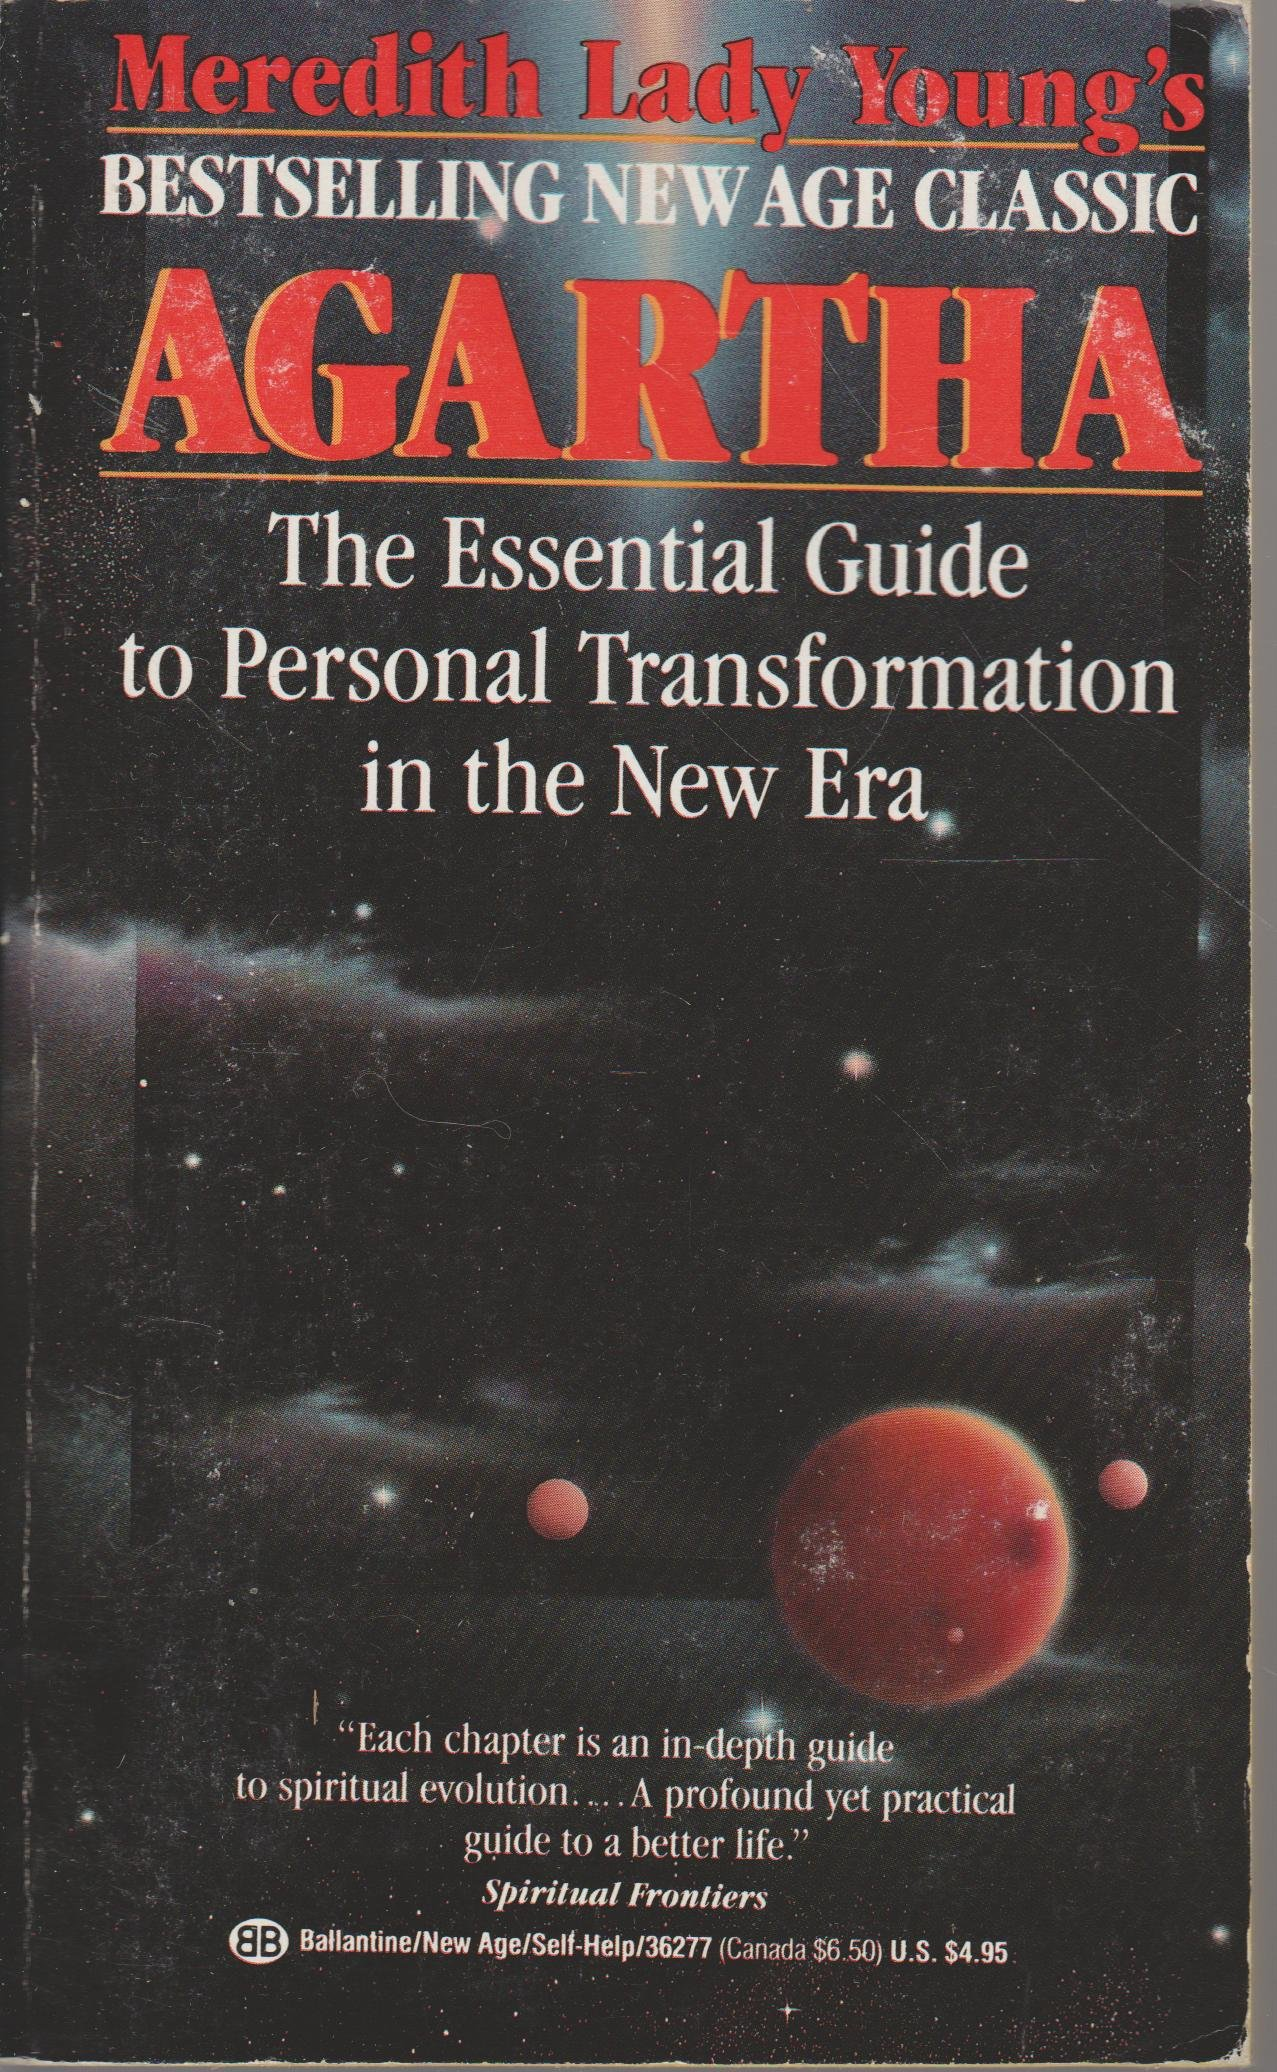 Agartha: The Essential Guide to Personal Transformation in the New